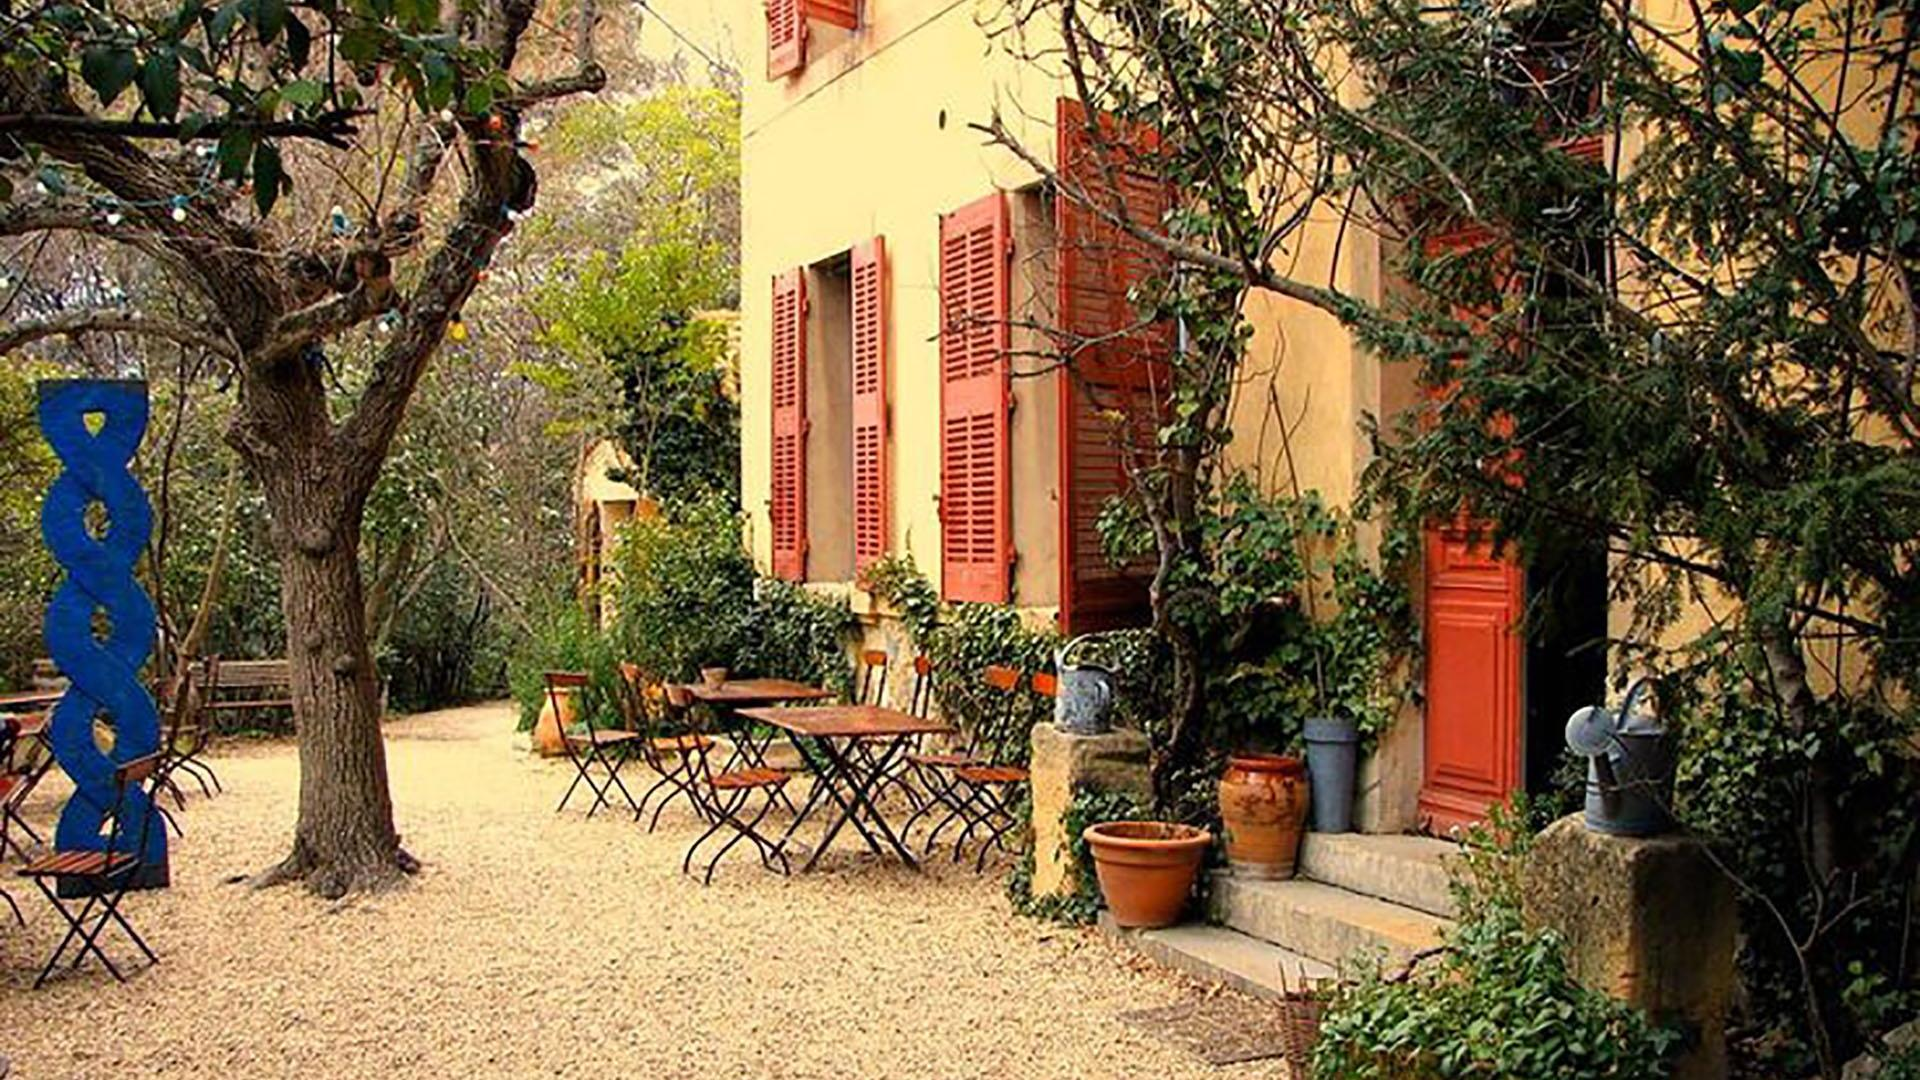 Provence old streetsWallpaper for Android   APK Download 1920x1080